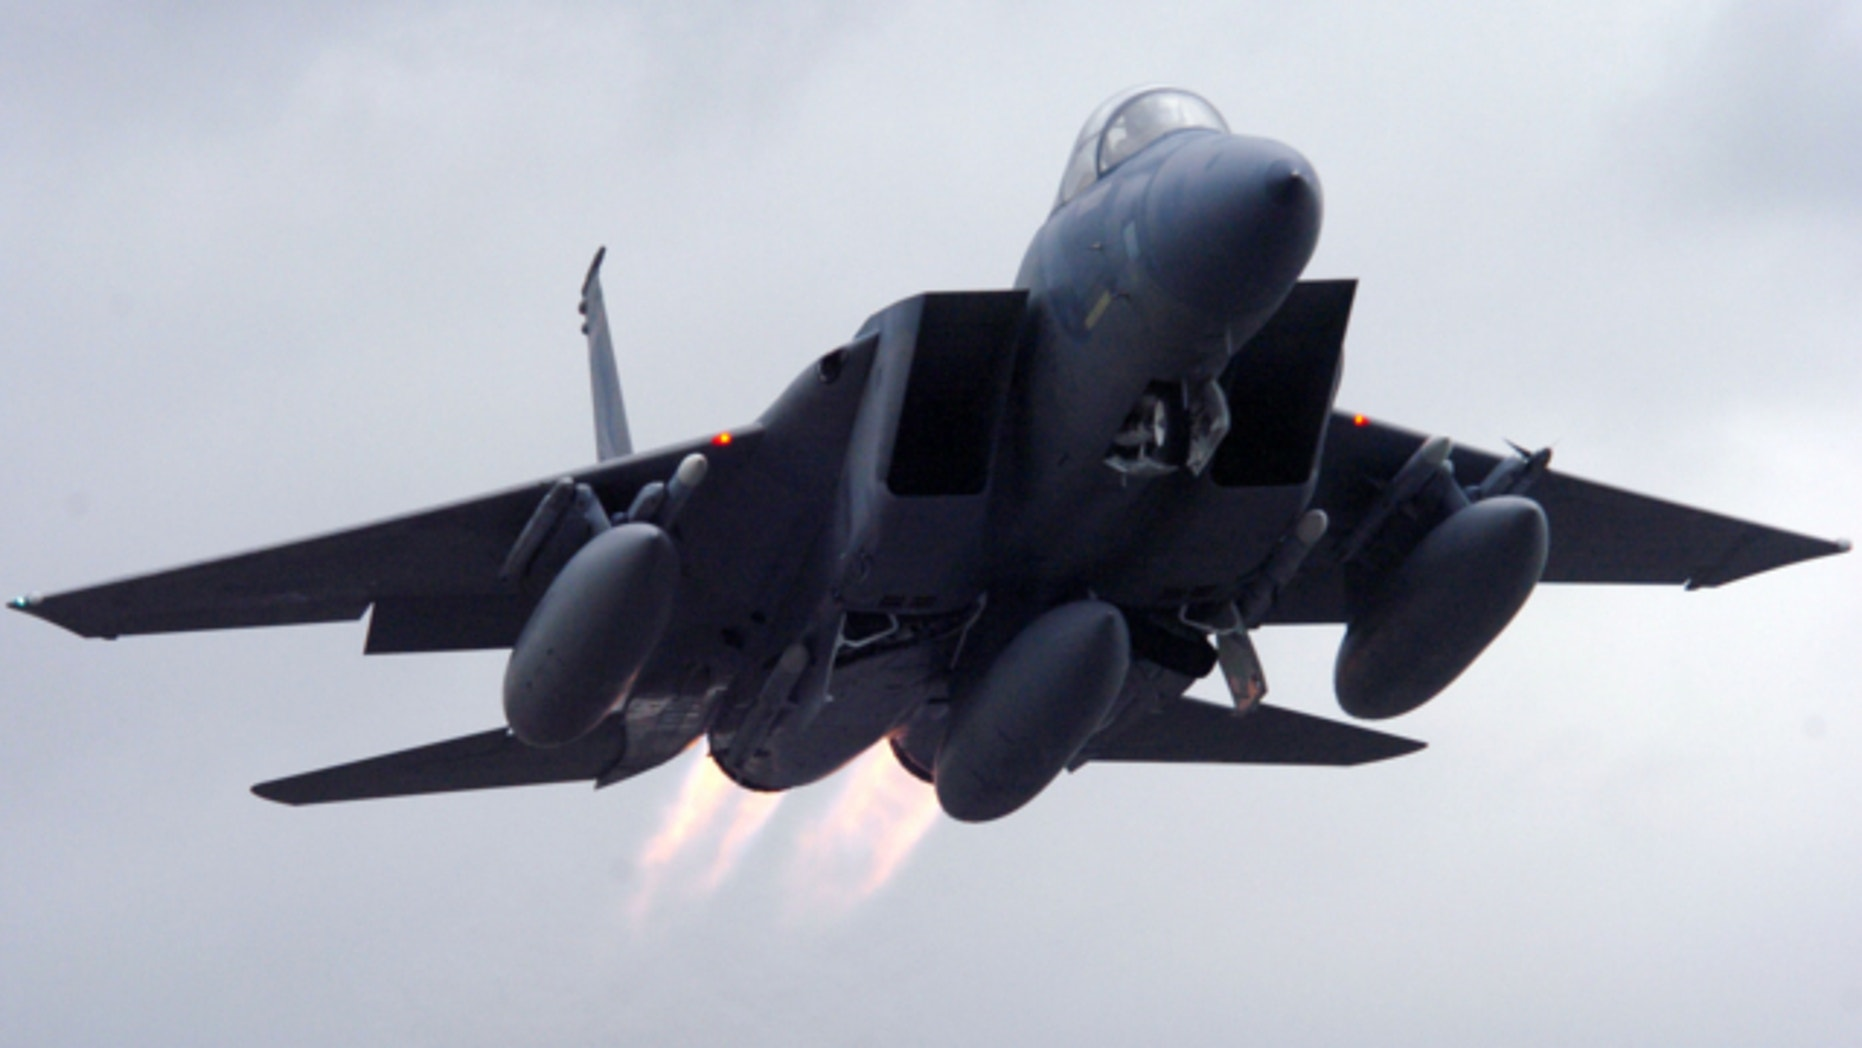 June 14, 2006: An F-15 Eagle takes off from Portland Air National Guard Base in Oregon.